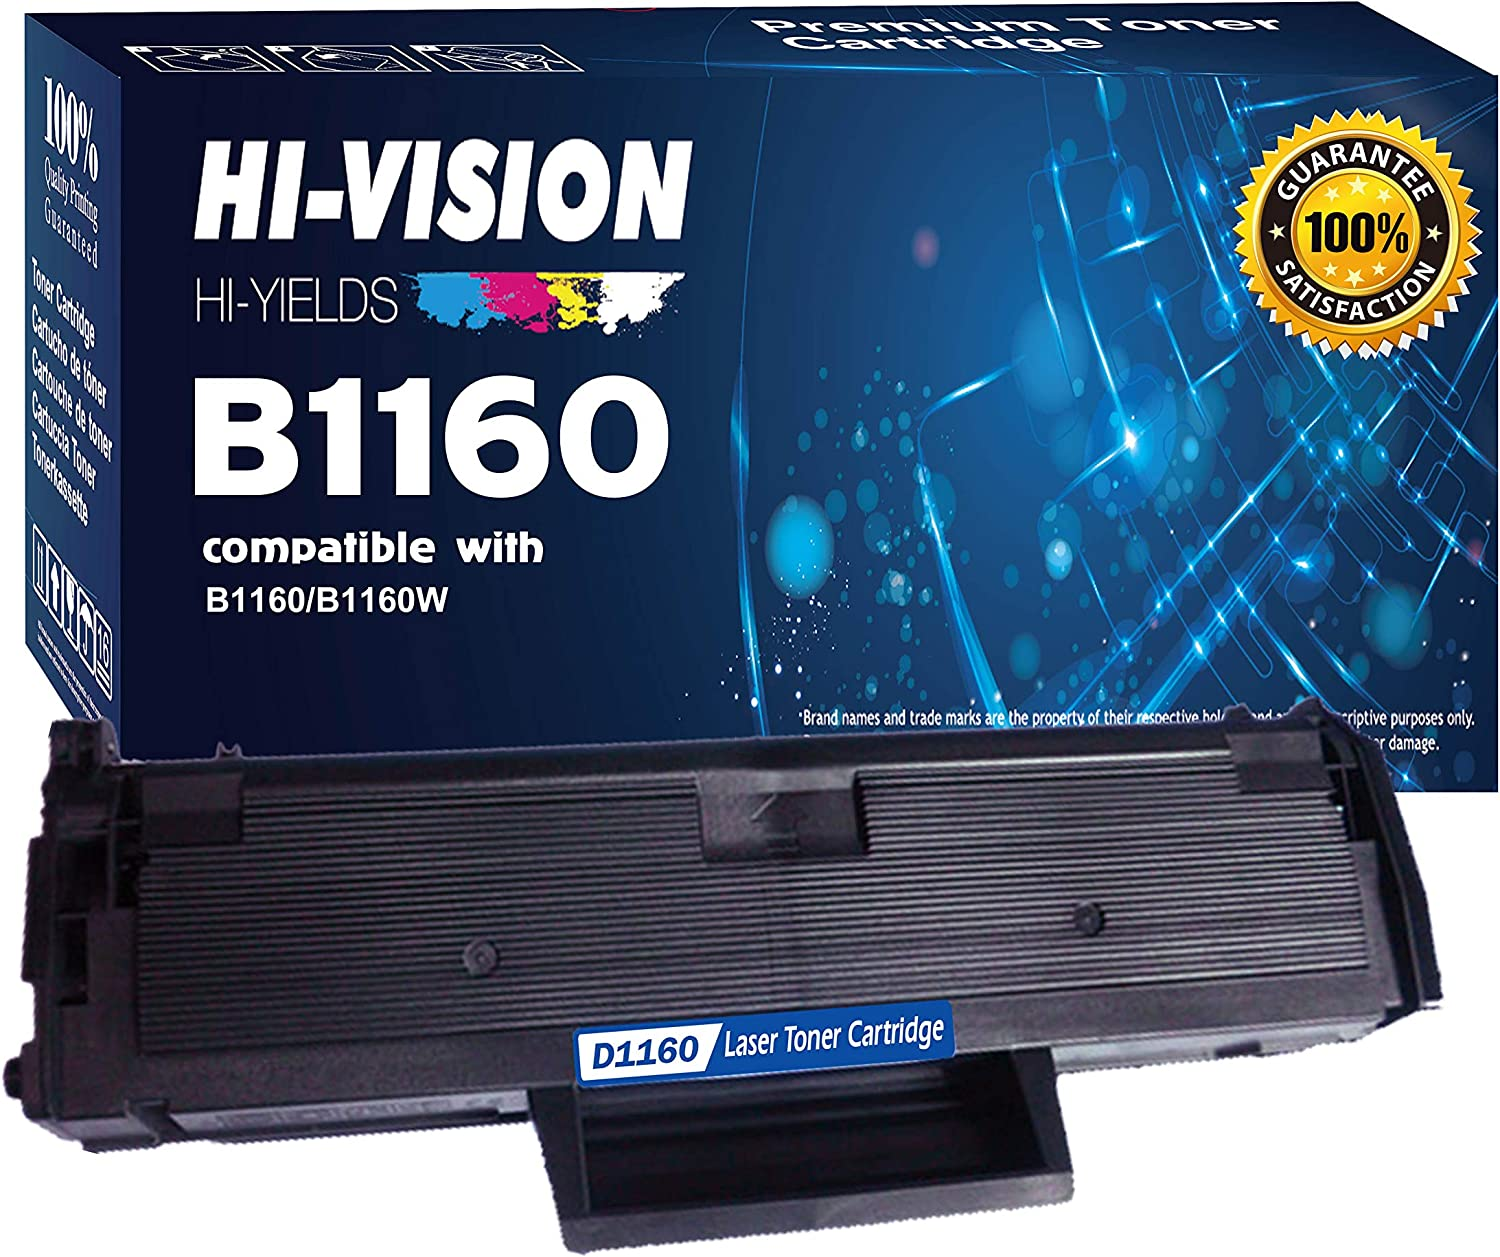 HI-VISION HI-YIELDS Compatible DELL B1160 1160 331-7335 (YK1PM, HF442) 1 Pack Black Toner Cartridge Replacement for Dell B1160,B1160W,B1163W,B1165nfw